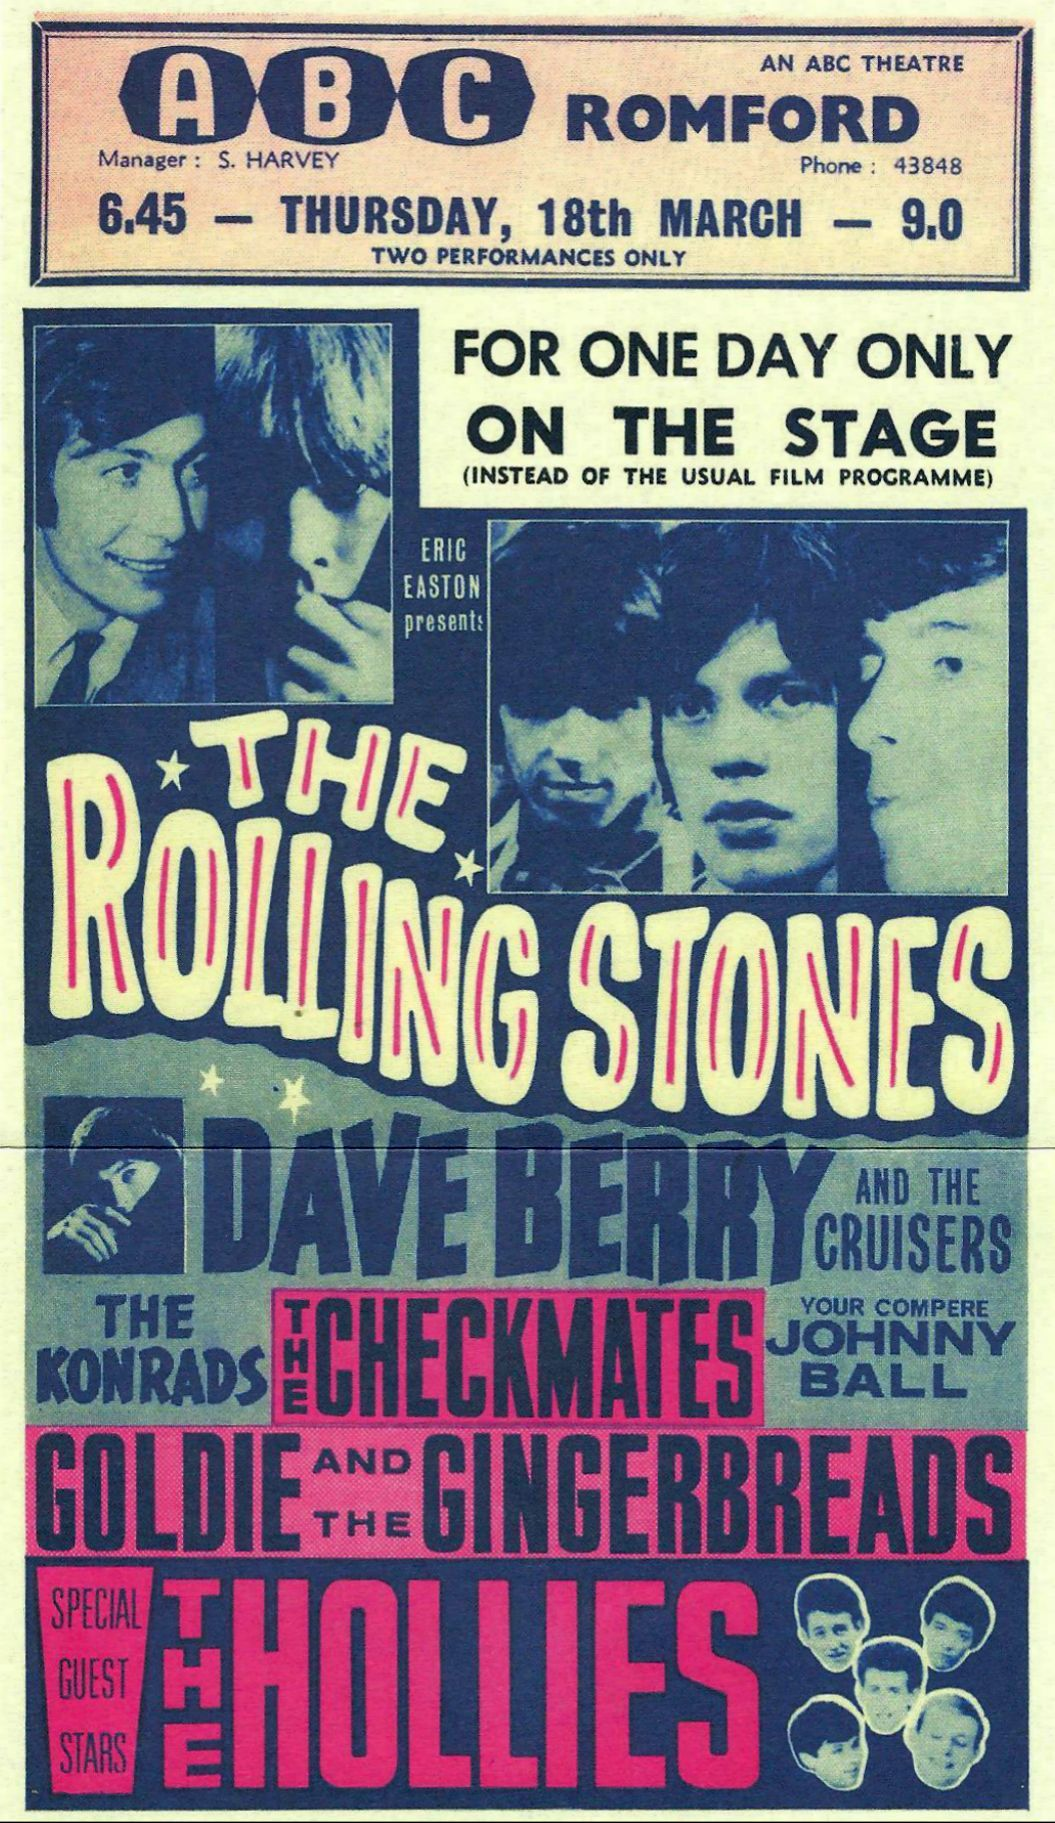 the rolling stones concert poster featuring the hollies and the konrads david bowie s first. Black Bedroom Furniture Sets. Home Design Ideas